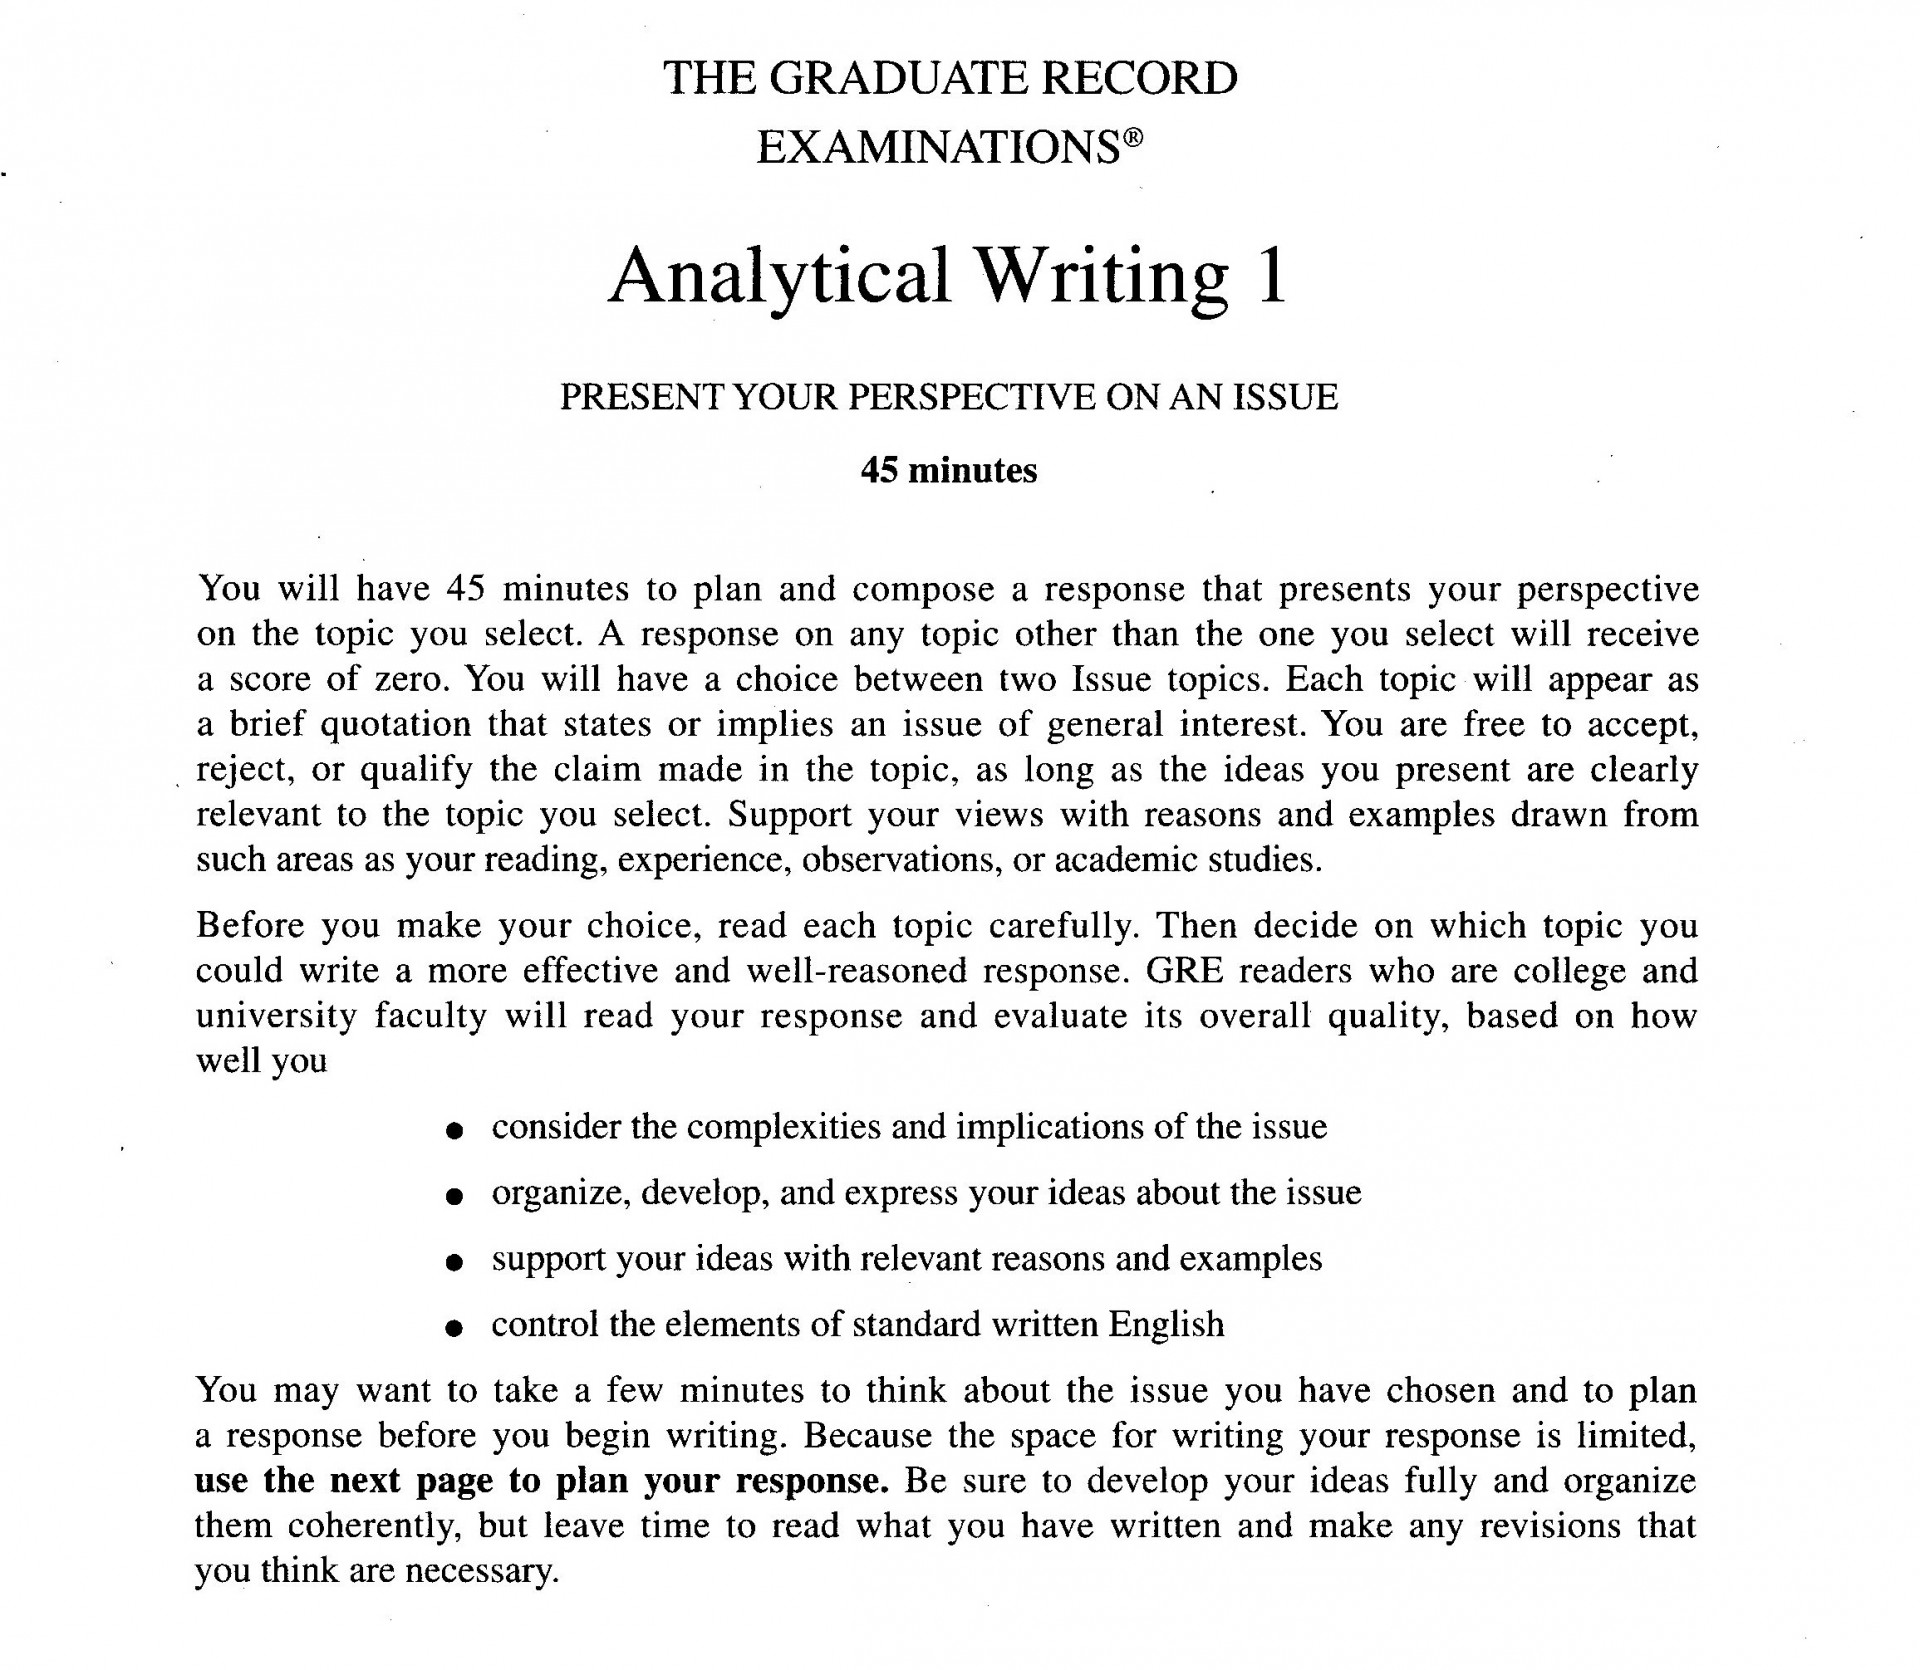 024 Essay Example Analytical20writing20issue20task20directions20for20gre201 Cheap Top Writing Service Canada Australia Reviews 1920